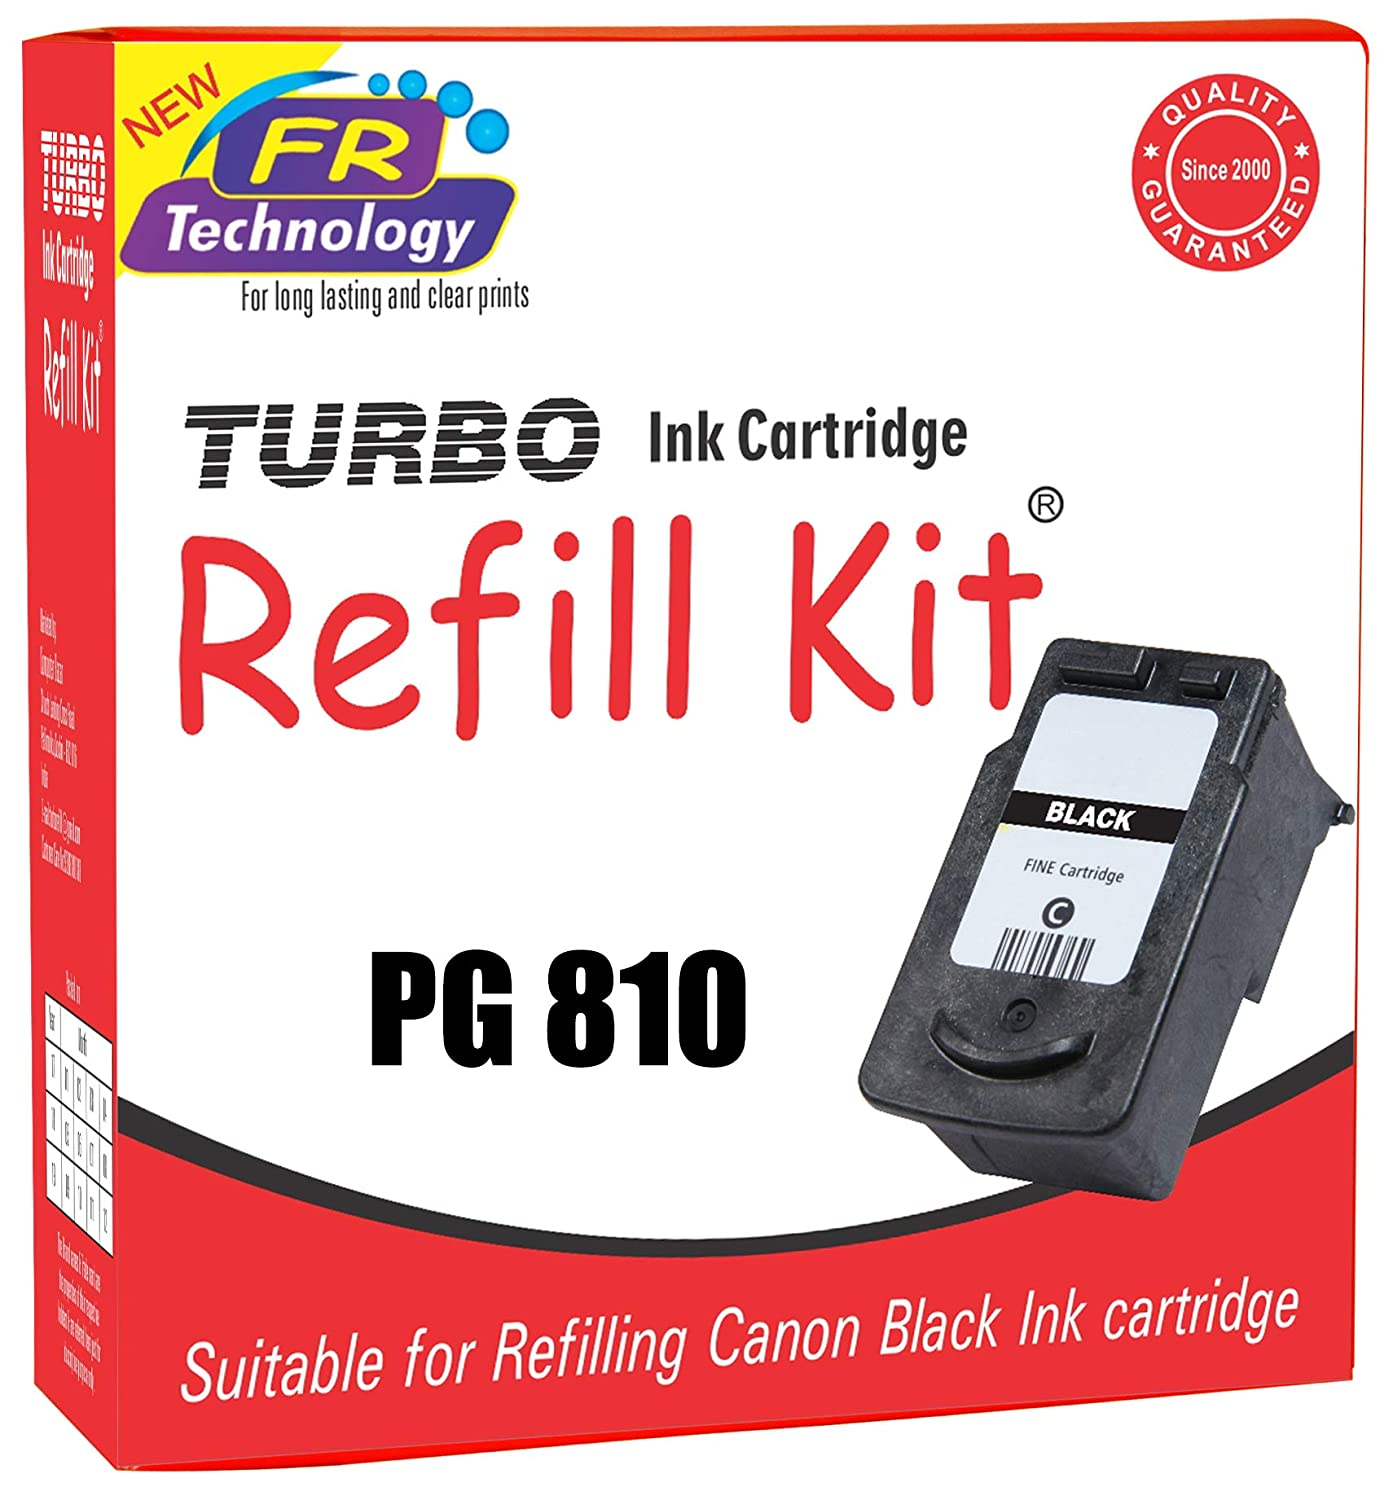 Turbo Ink Cartridge Refill Kit For Canon 810 Black Cl 811 Color Computers Accessories